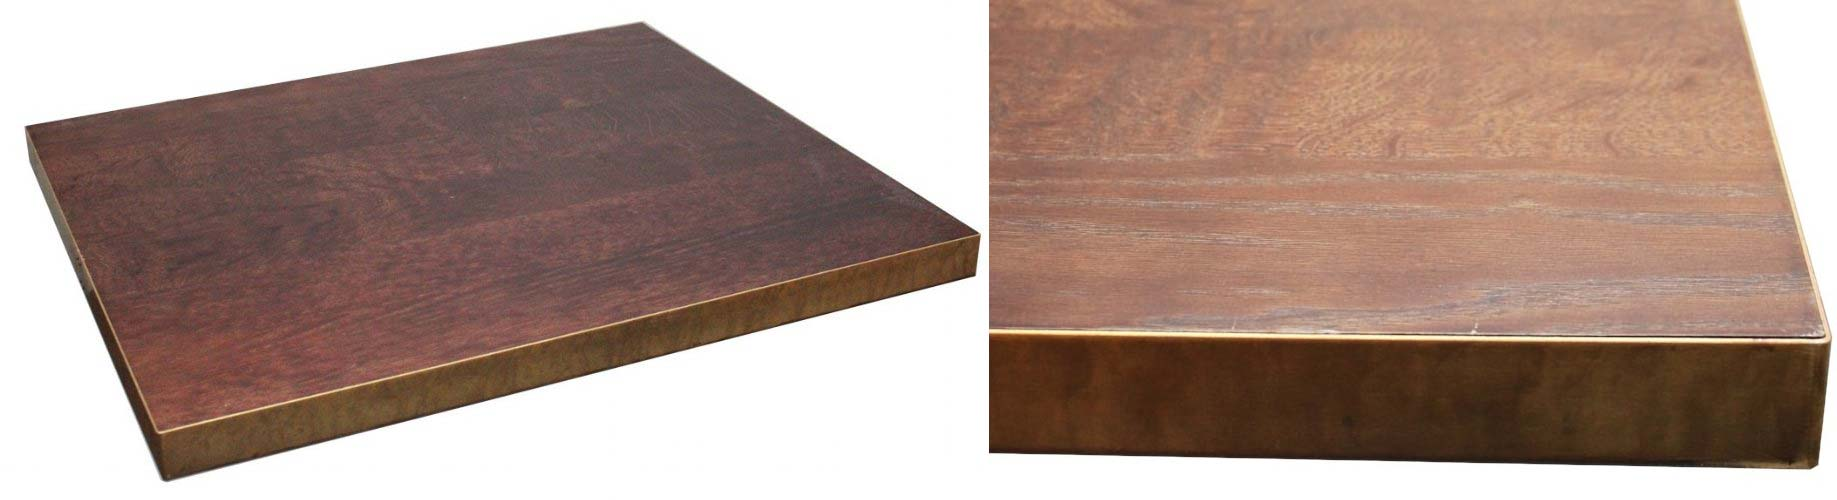 Never Fix Metal Edging To Solid Wood Table Tops